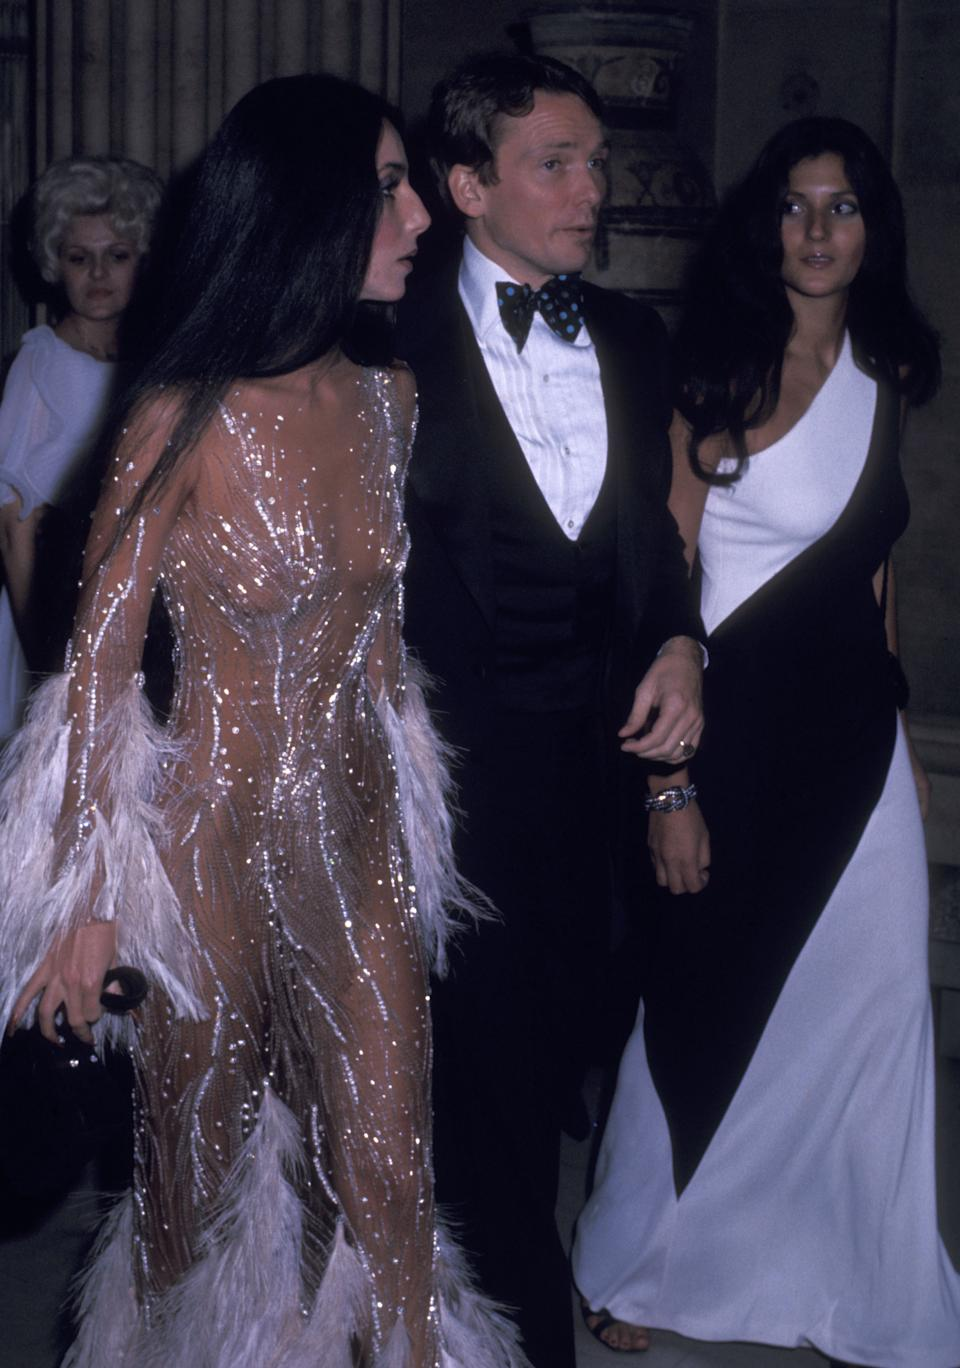 NEW YORK CITY - NOVEMBER 20:   Singer Cher, fashion designer Bob Mackie and Cher's friend Paulette Betts attend The Metropolitan Museum of Art's Costume Insitute Gala Exhibition